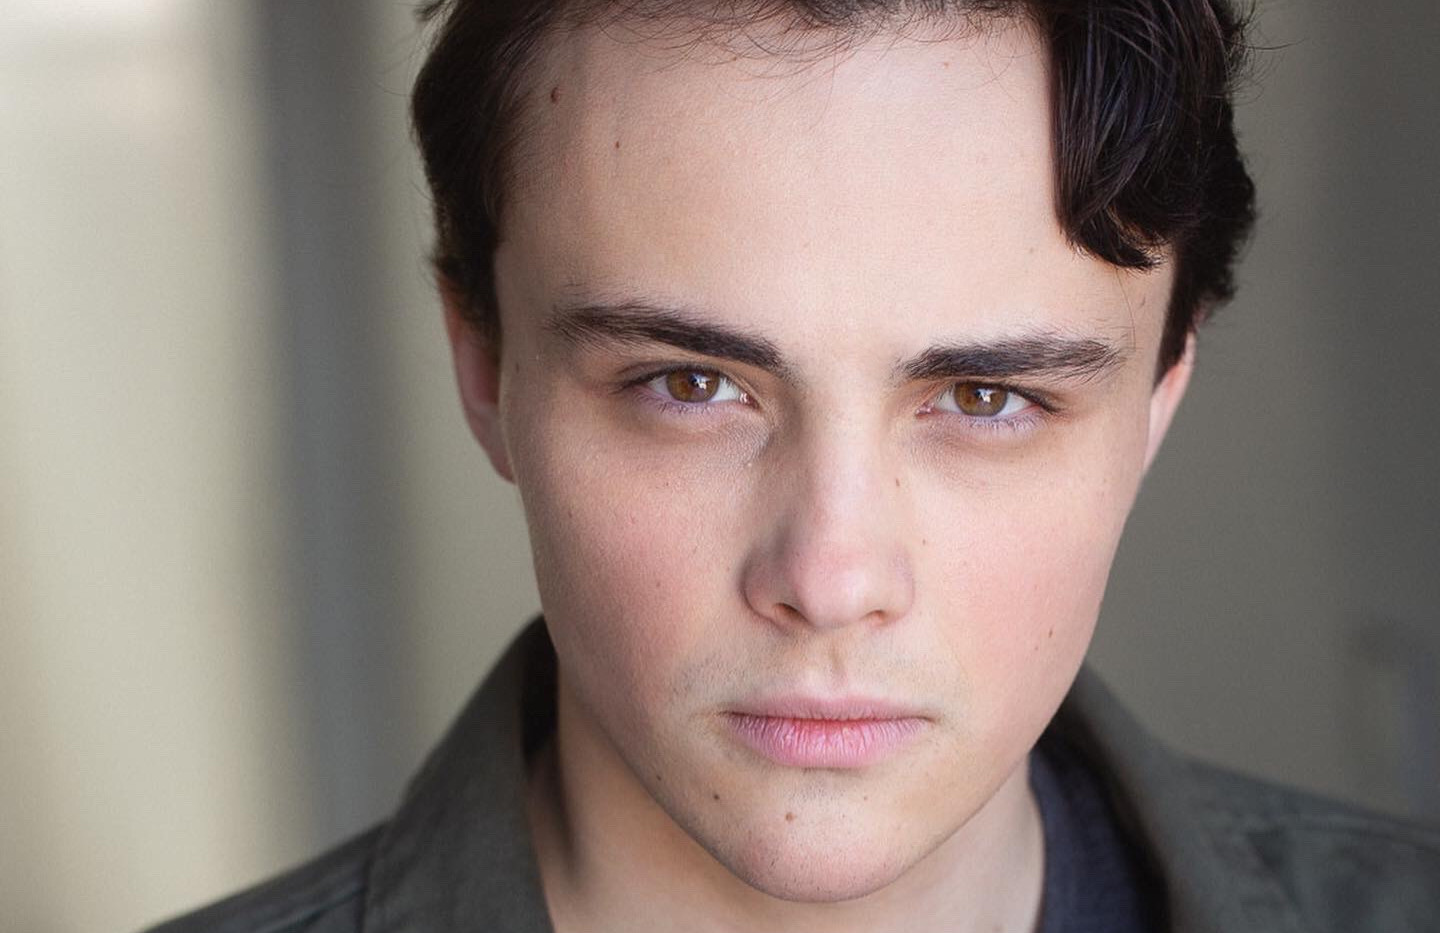 Evan J. Parker - Headshot 3